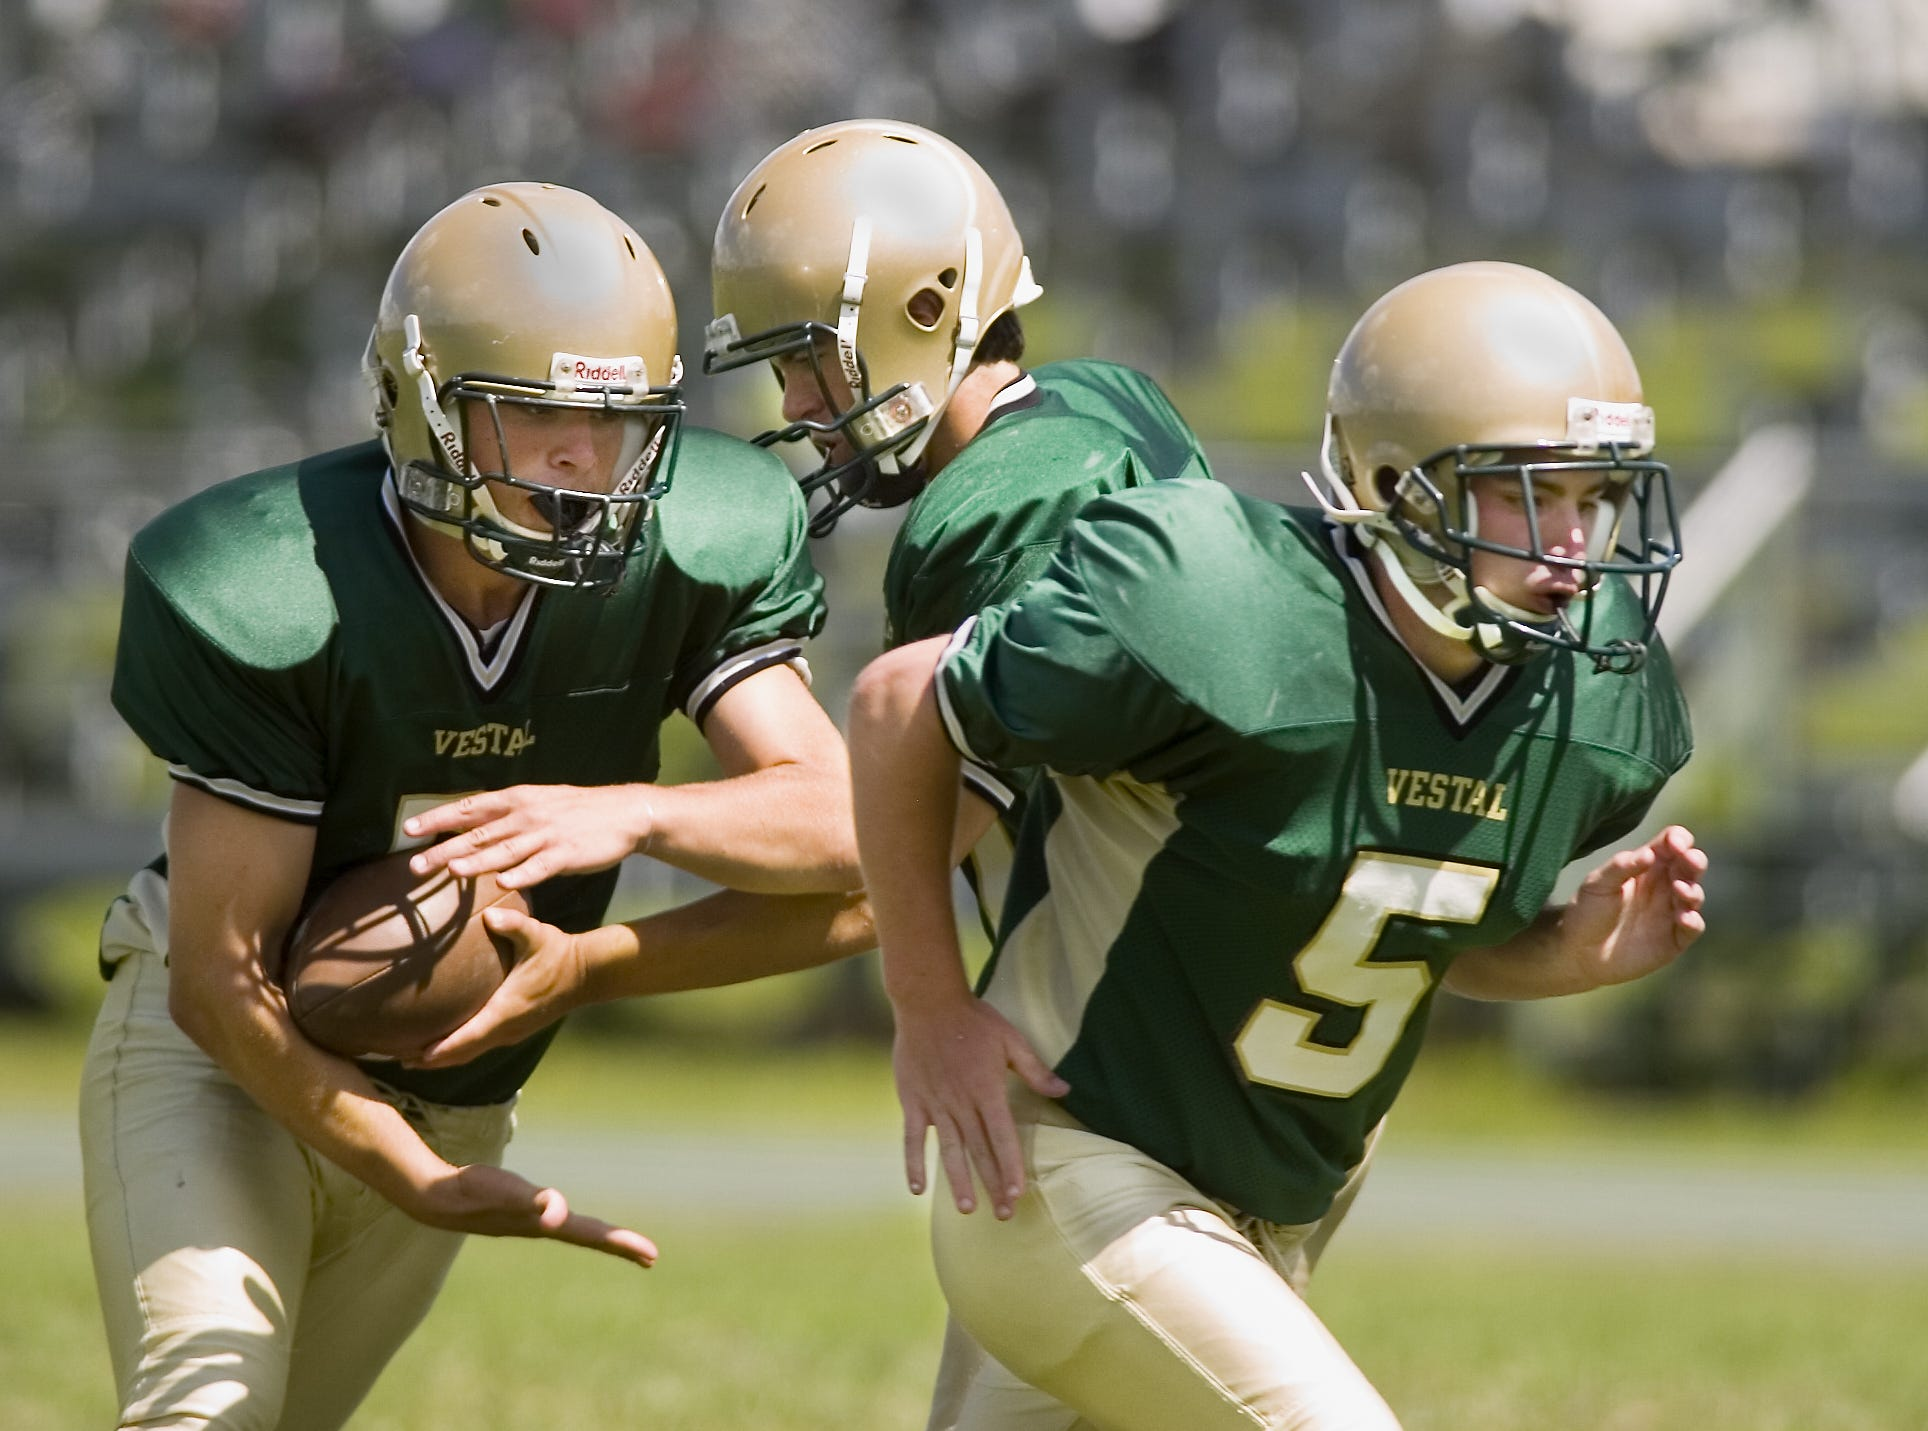 In 2006, Vestal QB Frank Vieira, center, hands off to running back Travis Harrington. At right is running back Pat Zelno.